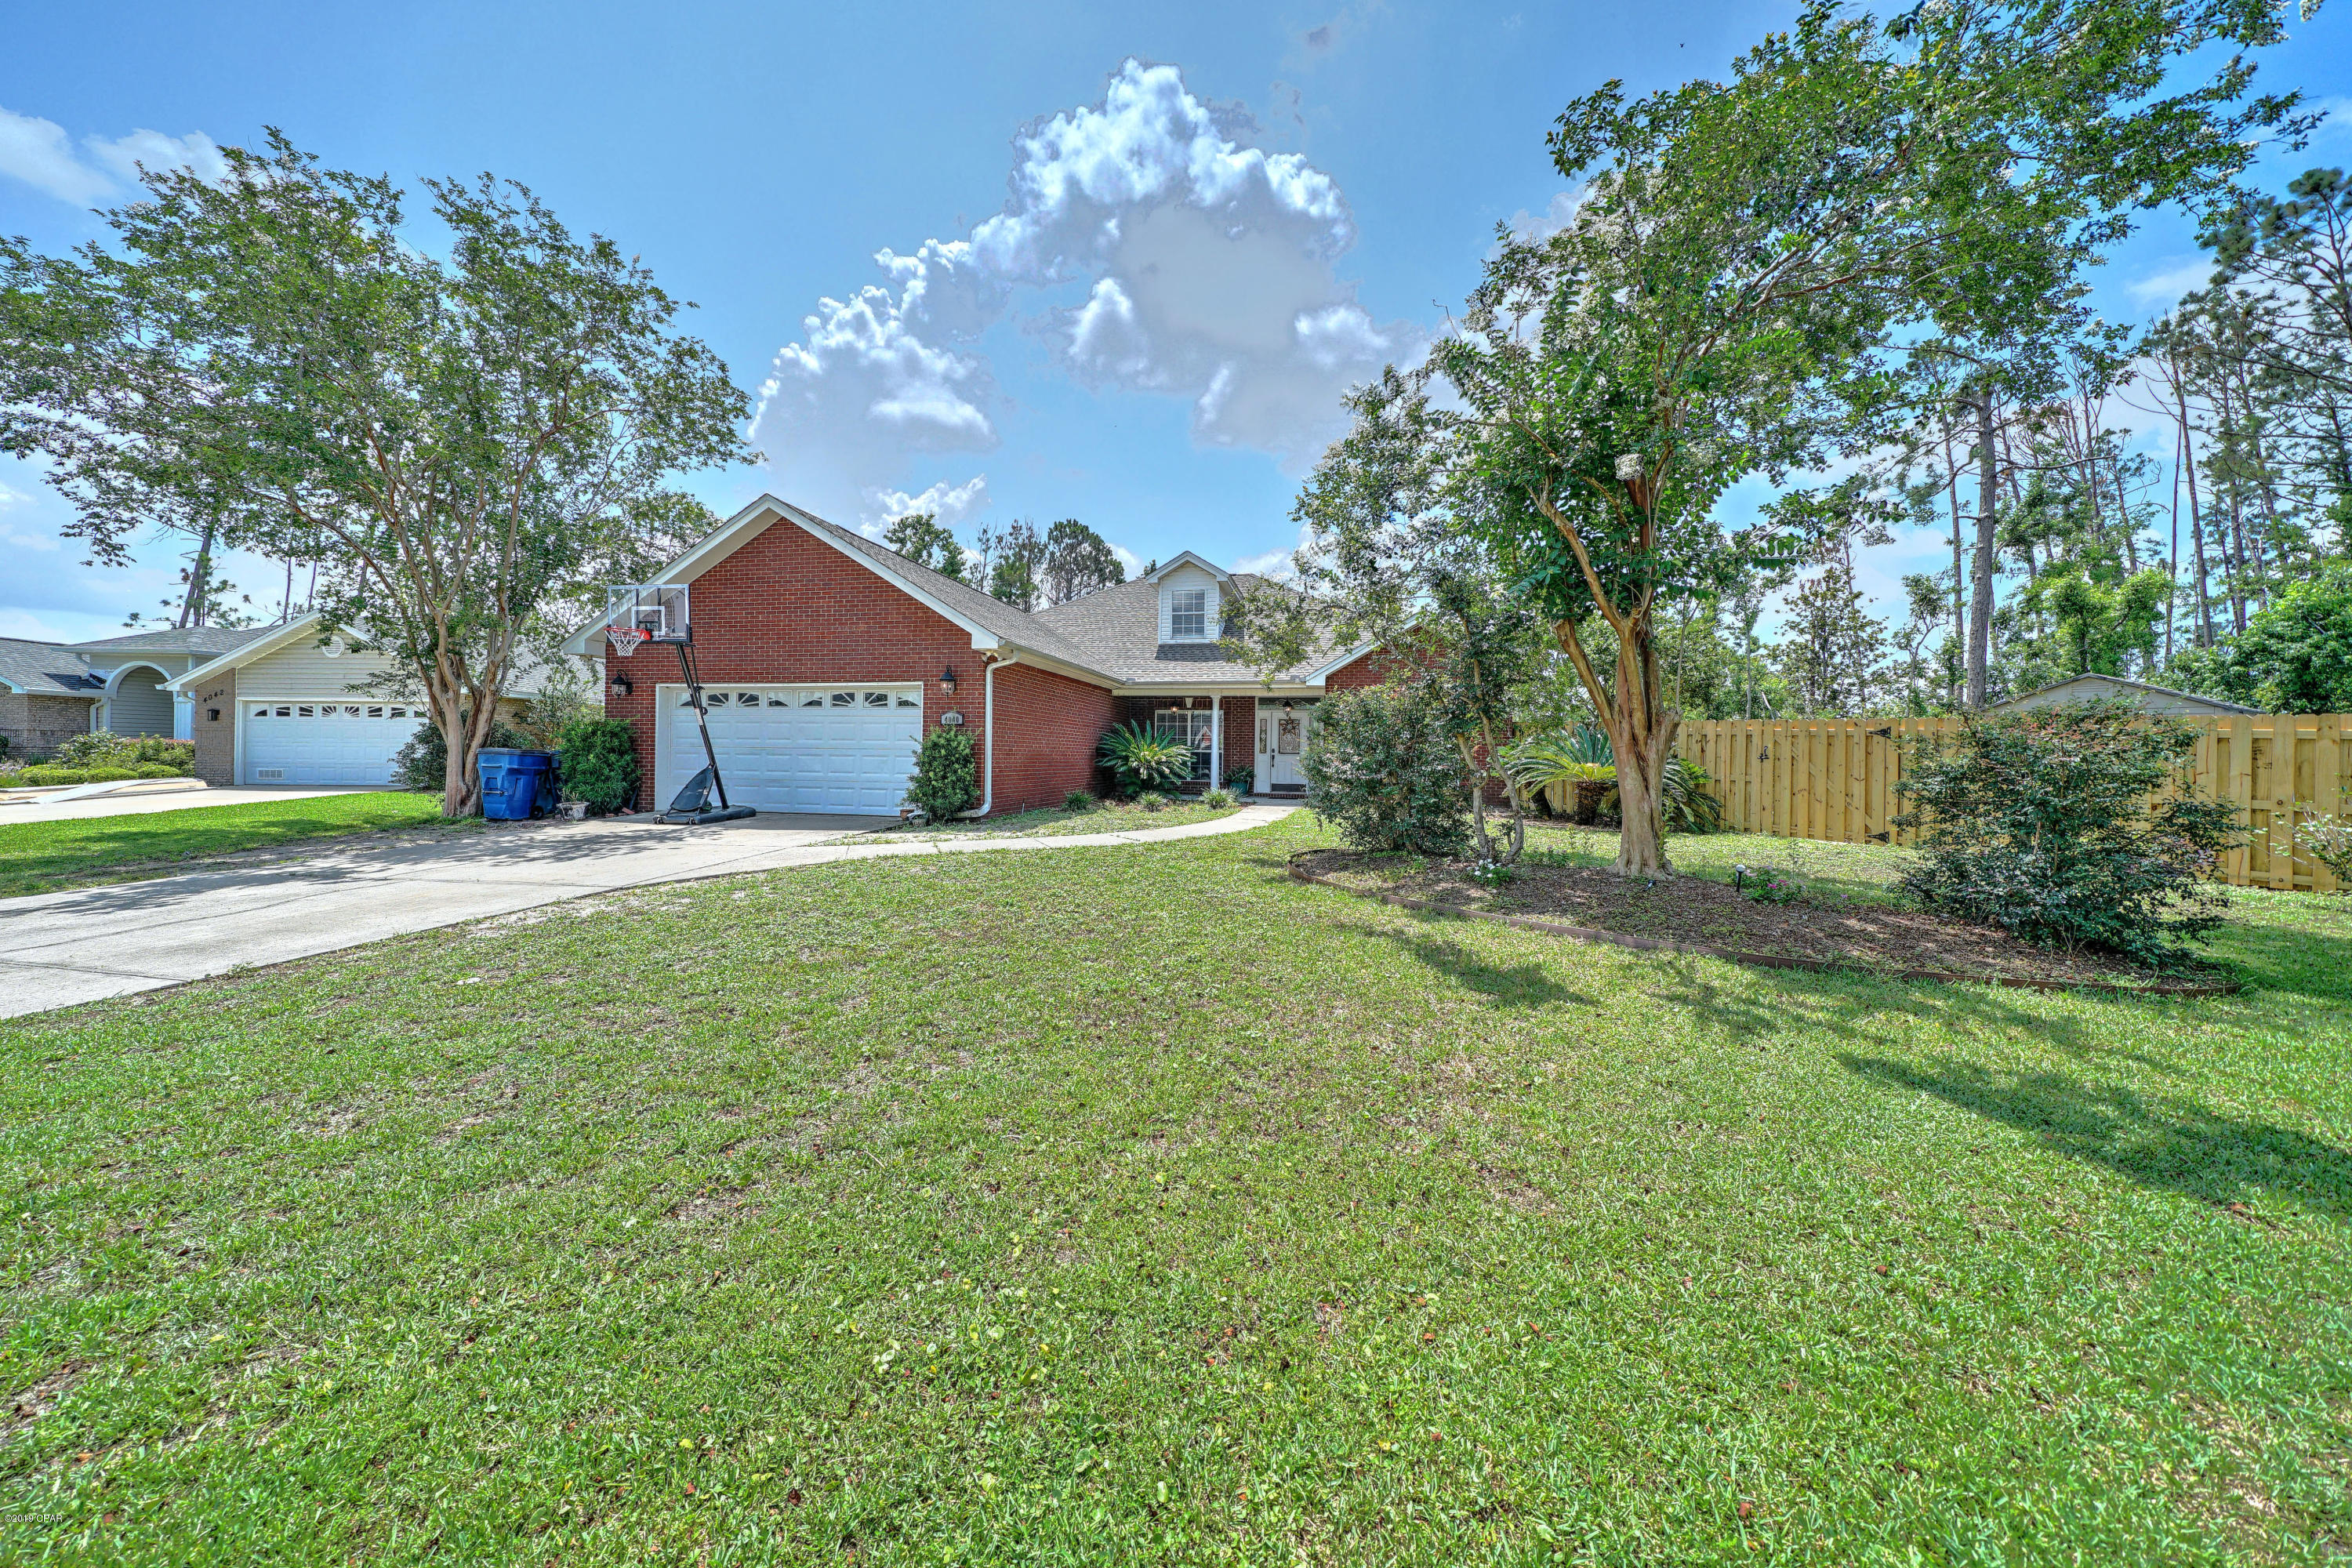 Photo of 4040 Ilex Circle Panama City FL 32405